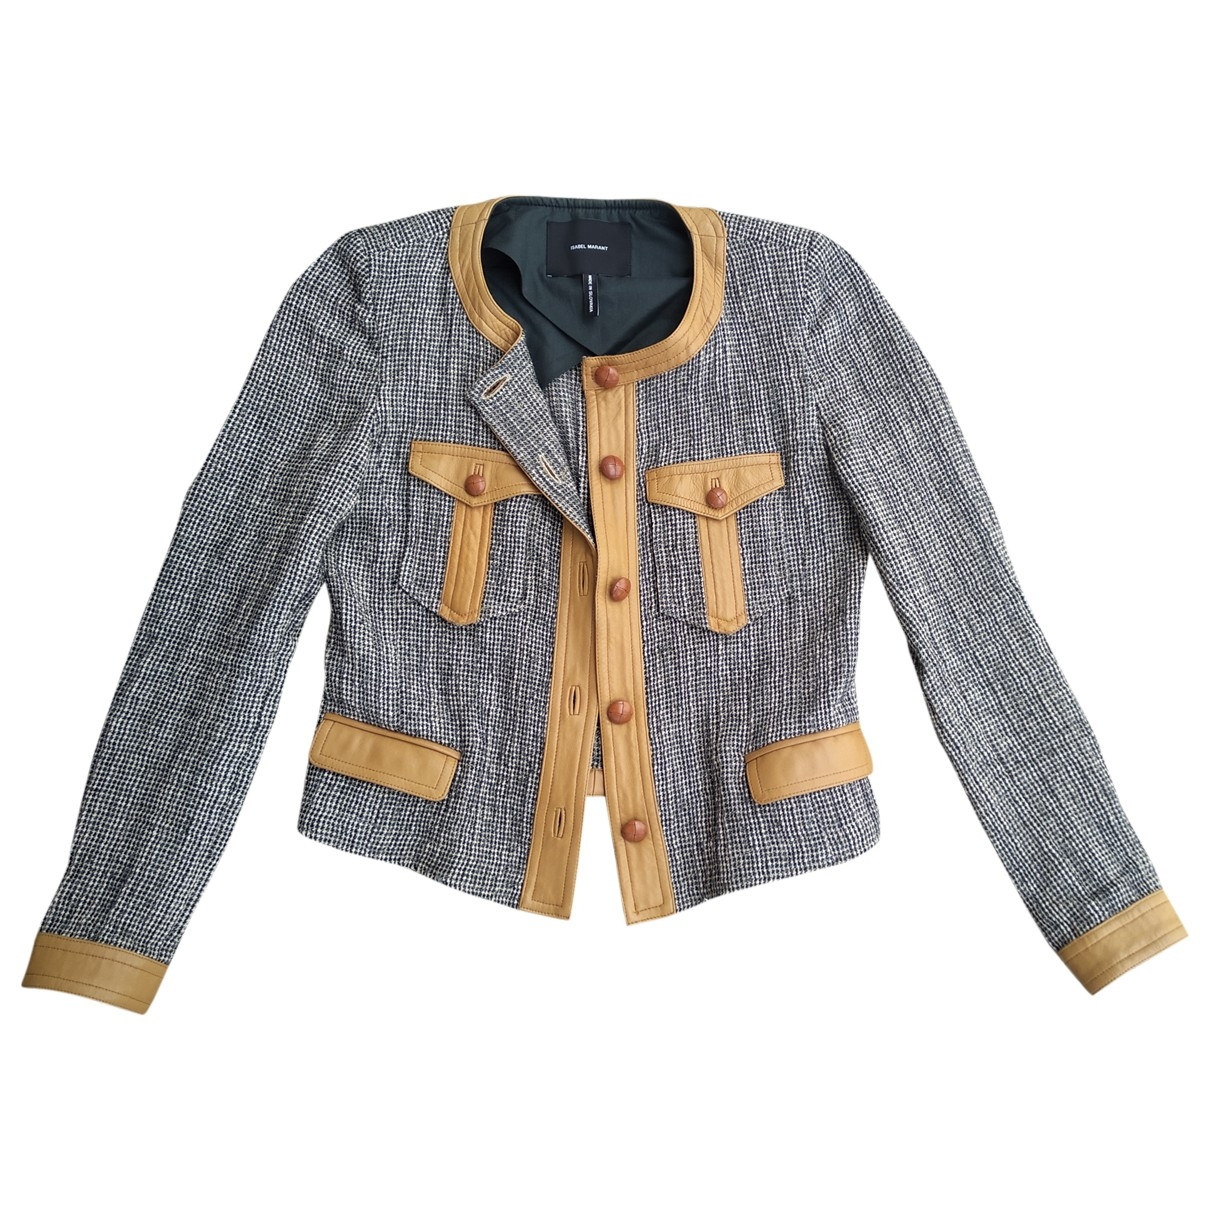 Isabel Marant \N Multicolour Wool jacket for Women 36 FR